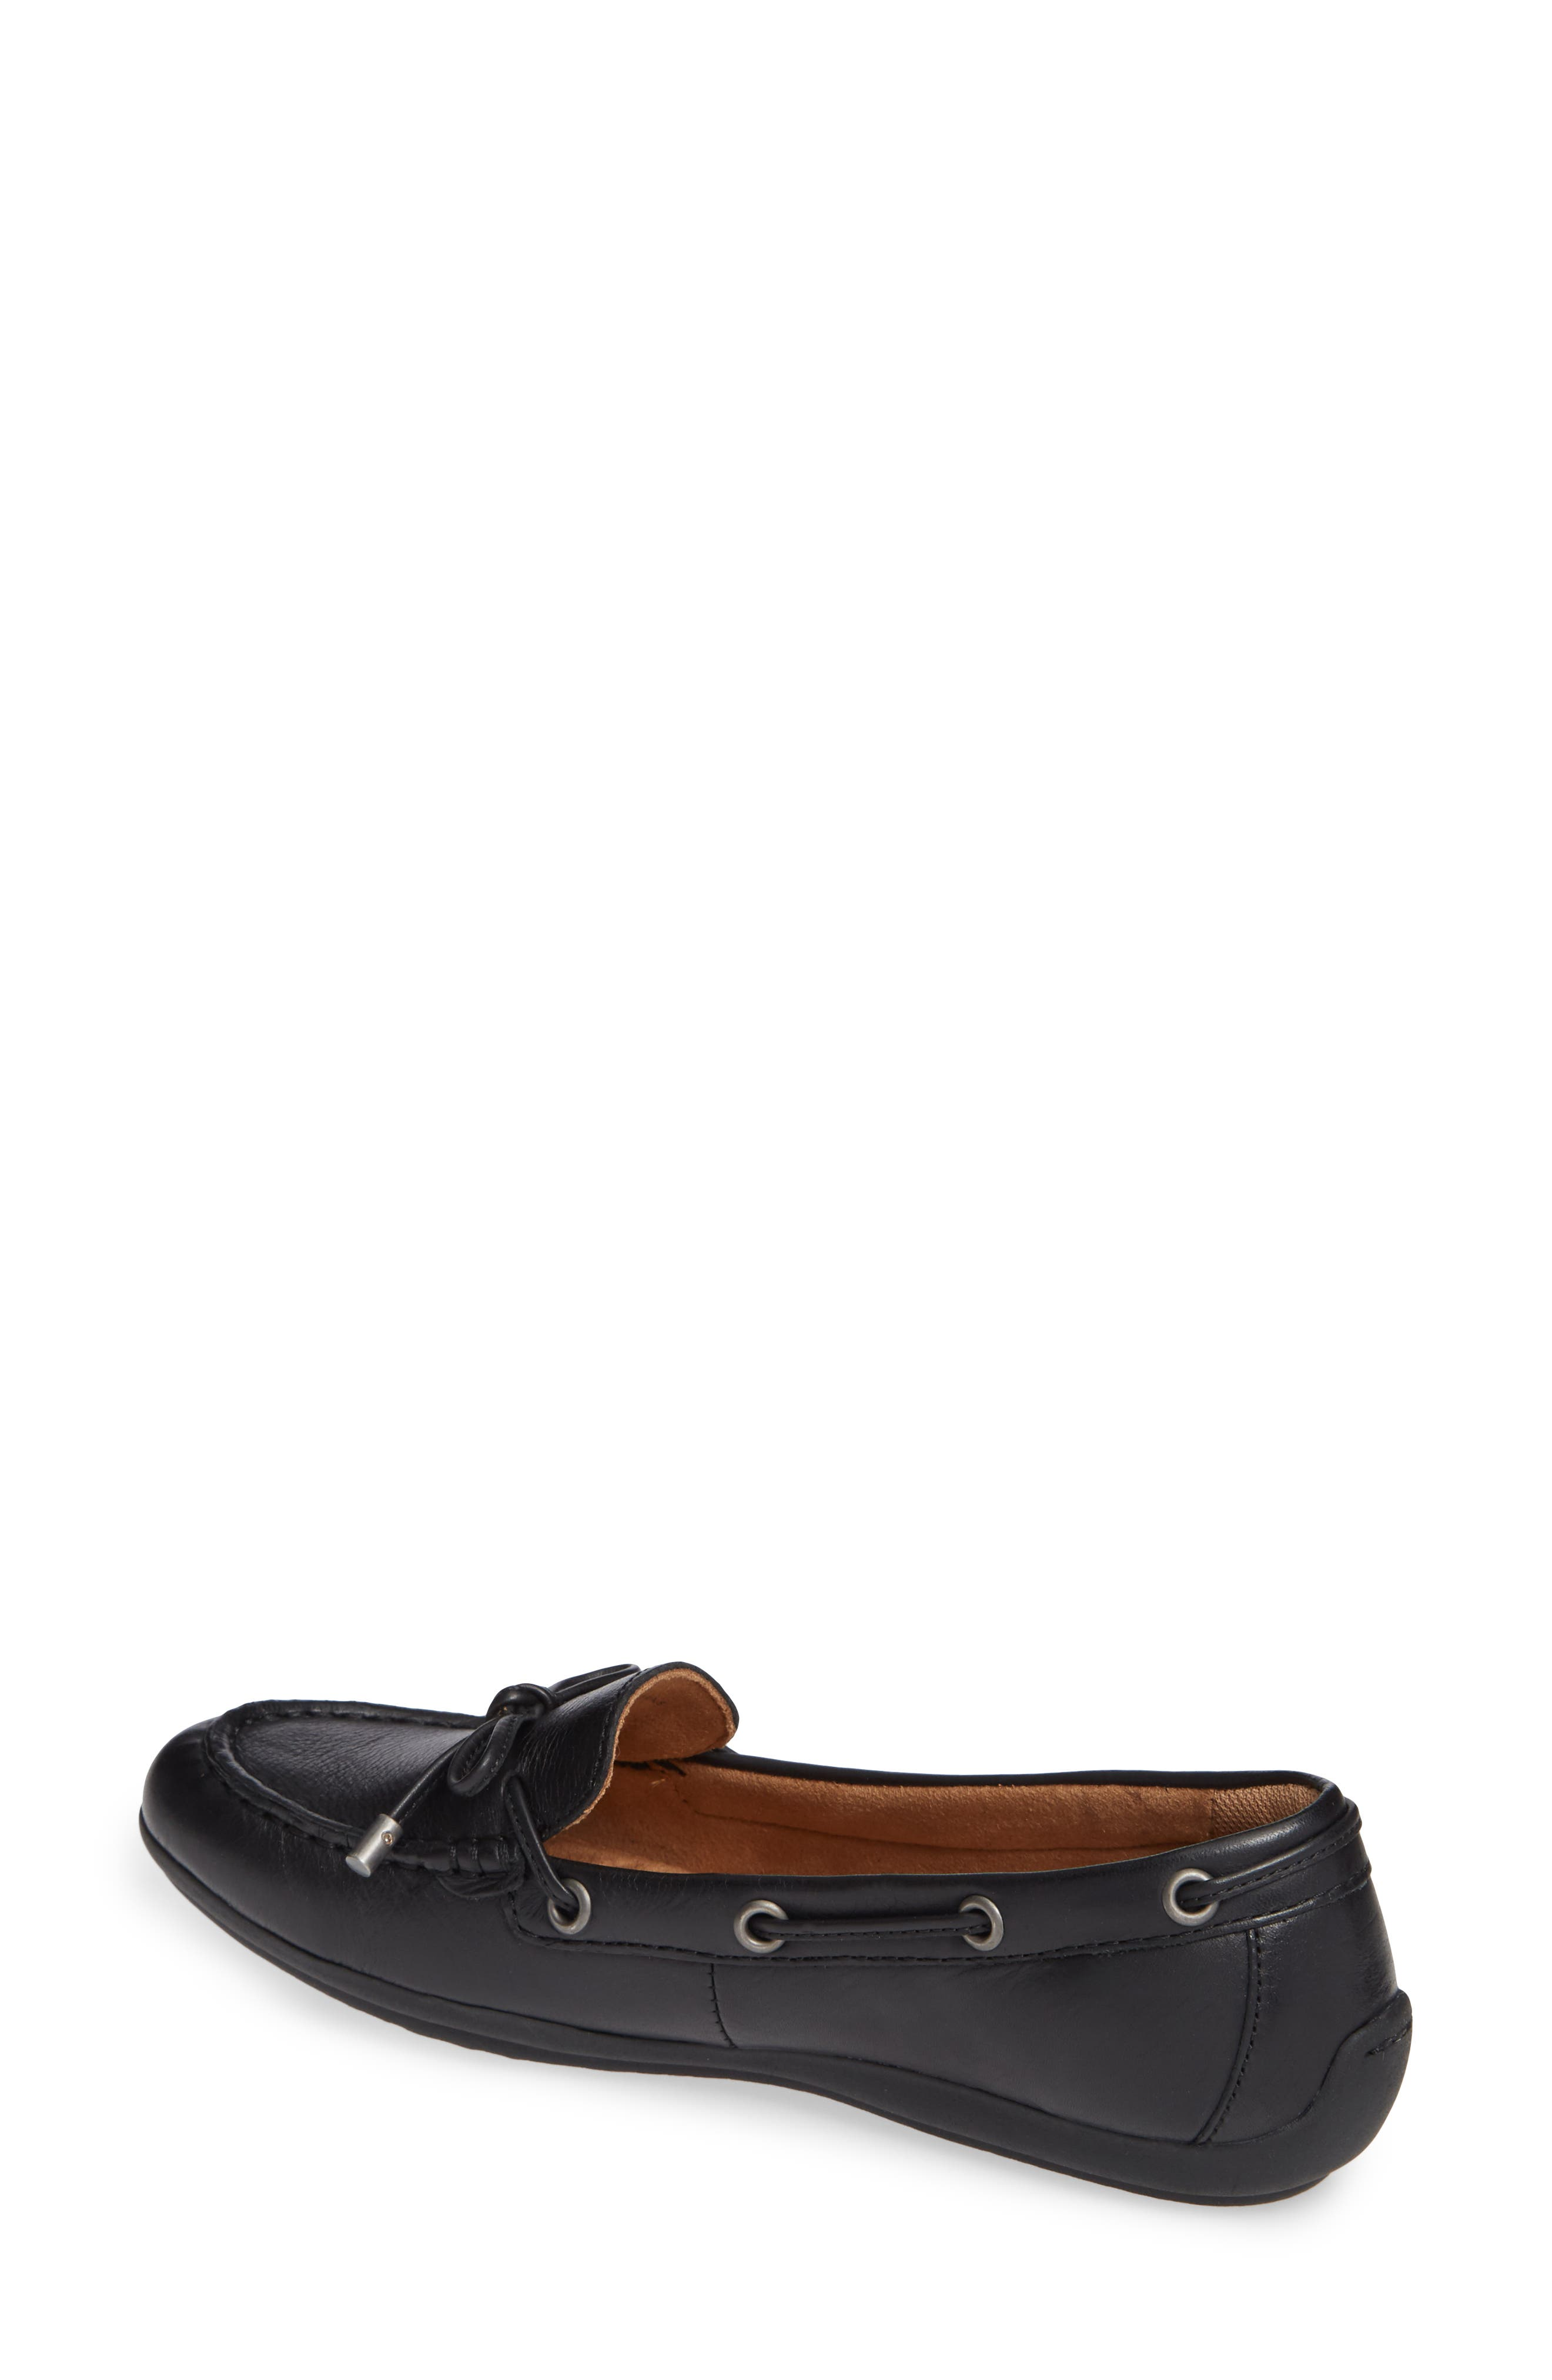 Mindy Loafer,                             Alternate thumbnail 2, color,                             BLACK